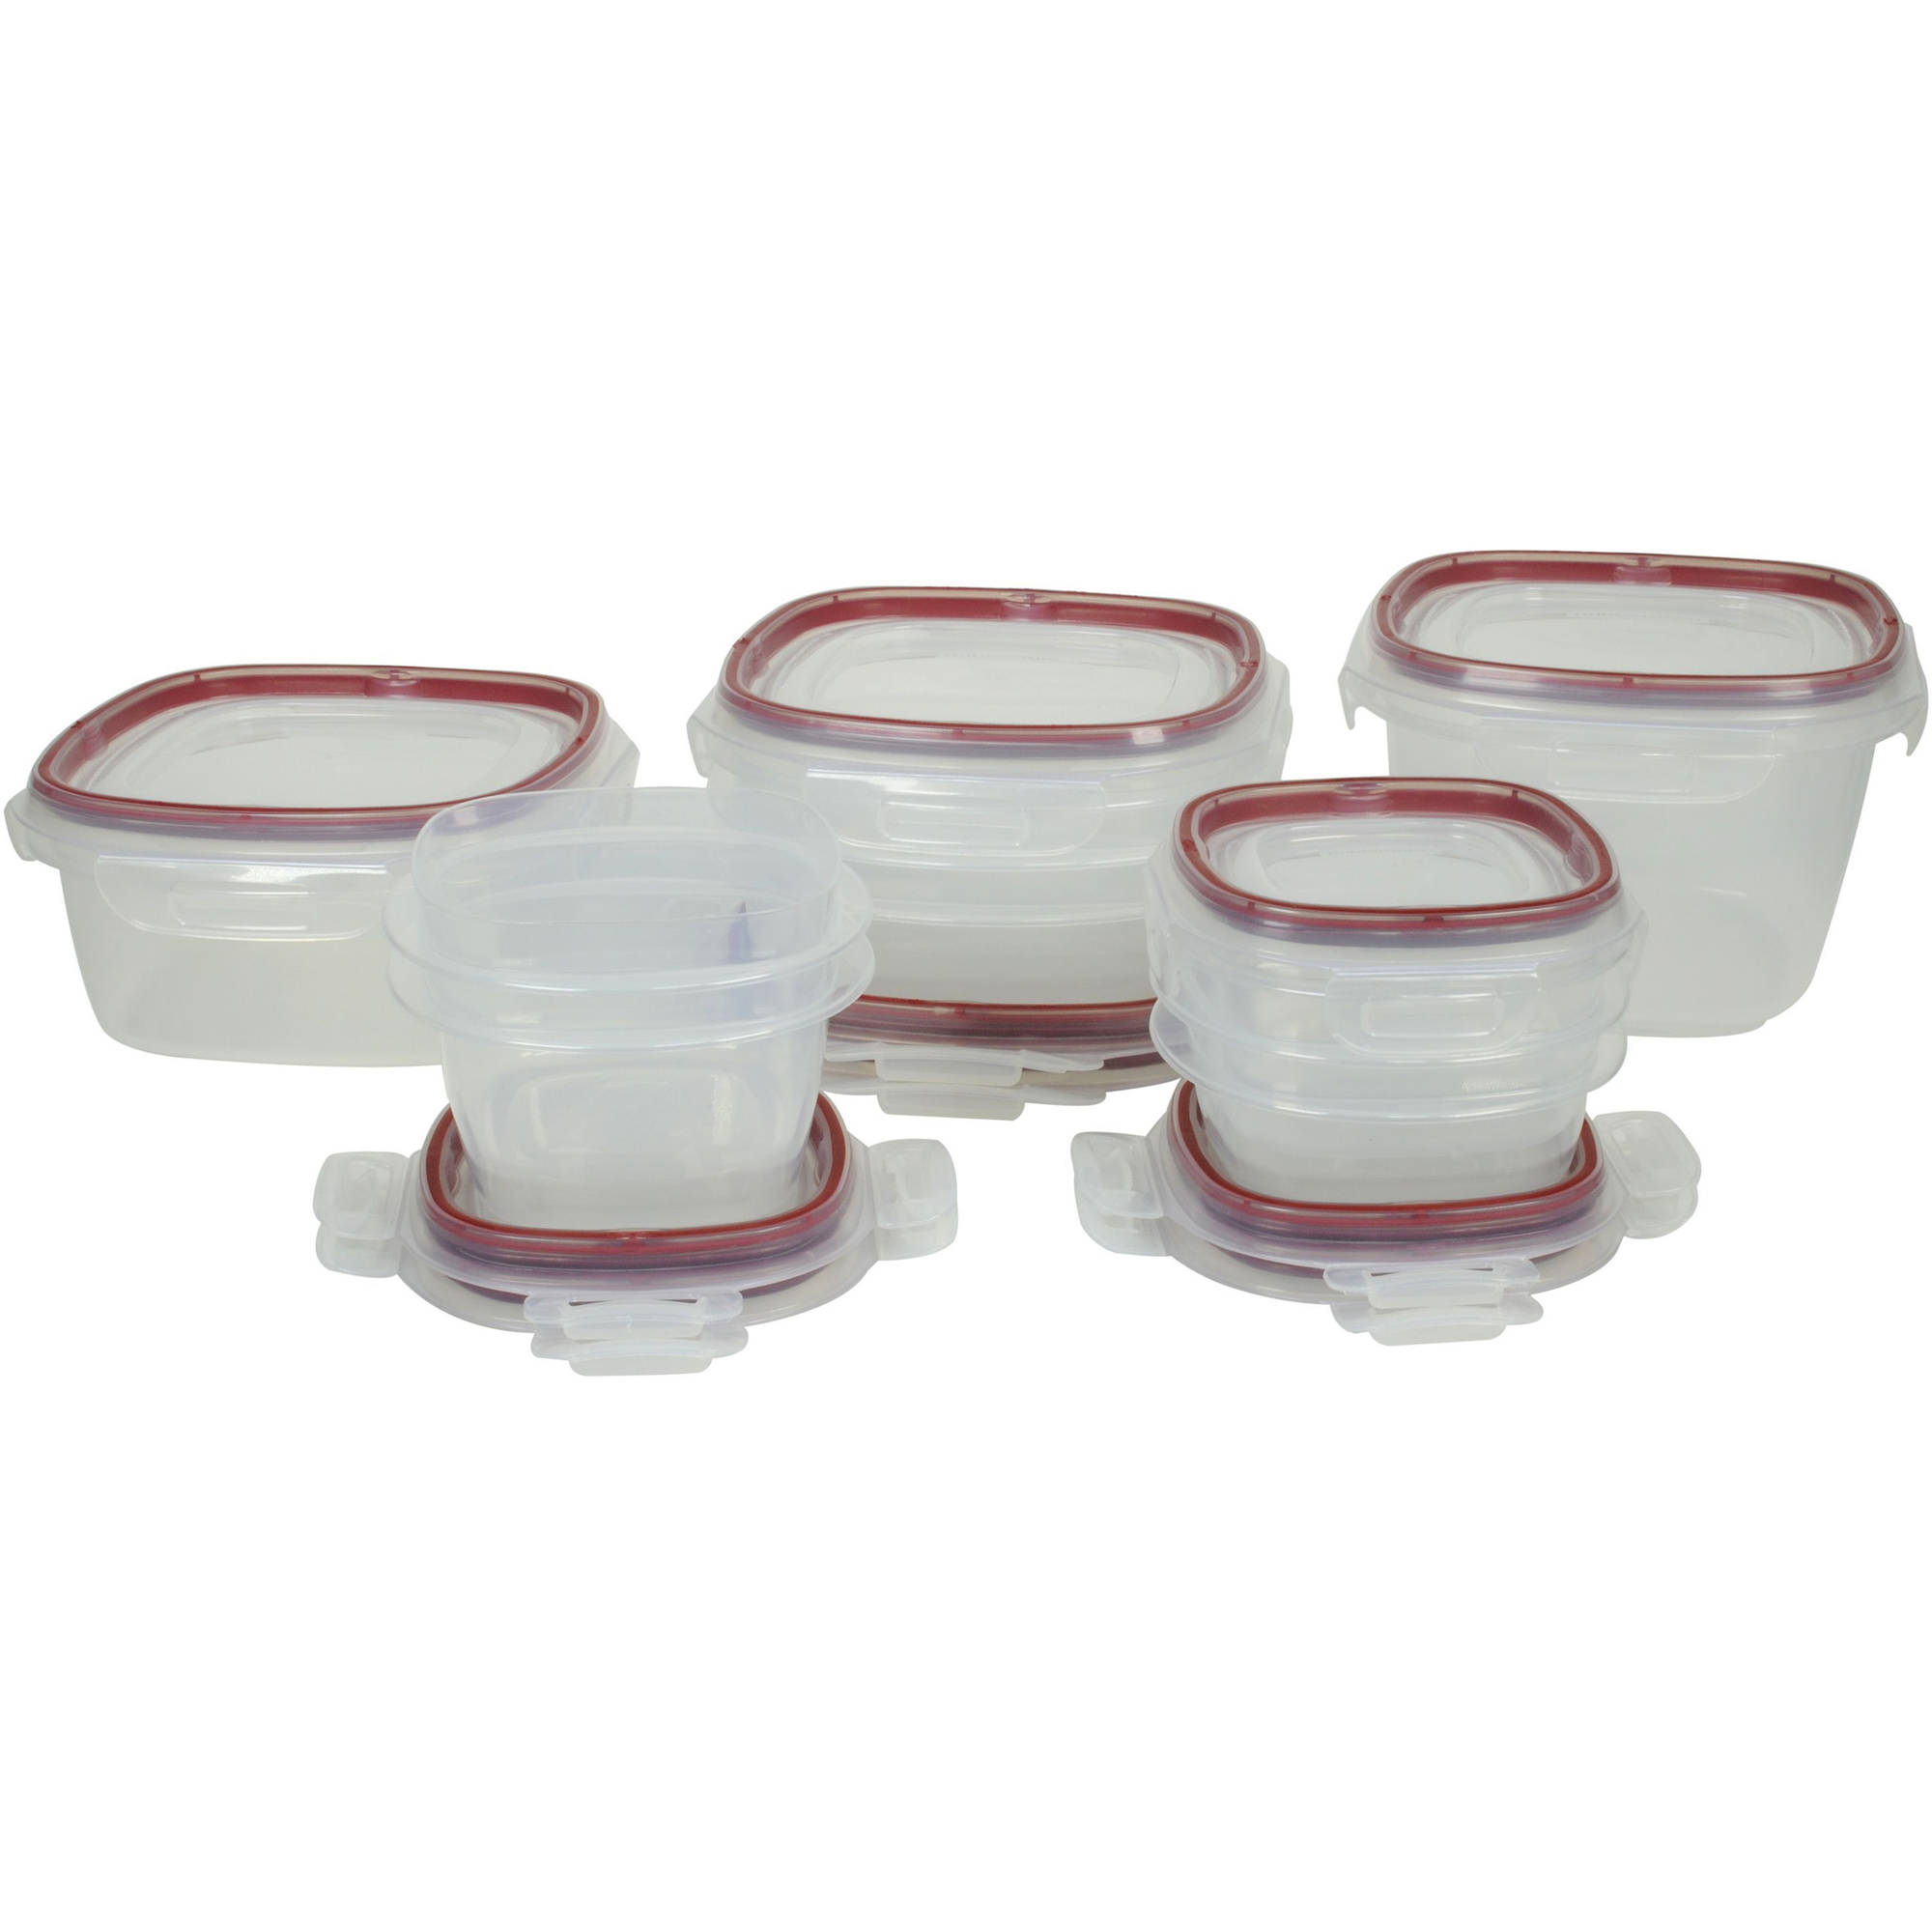 20 Rubbermaid Food Storage Set Container With Lid Clip